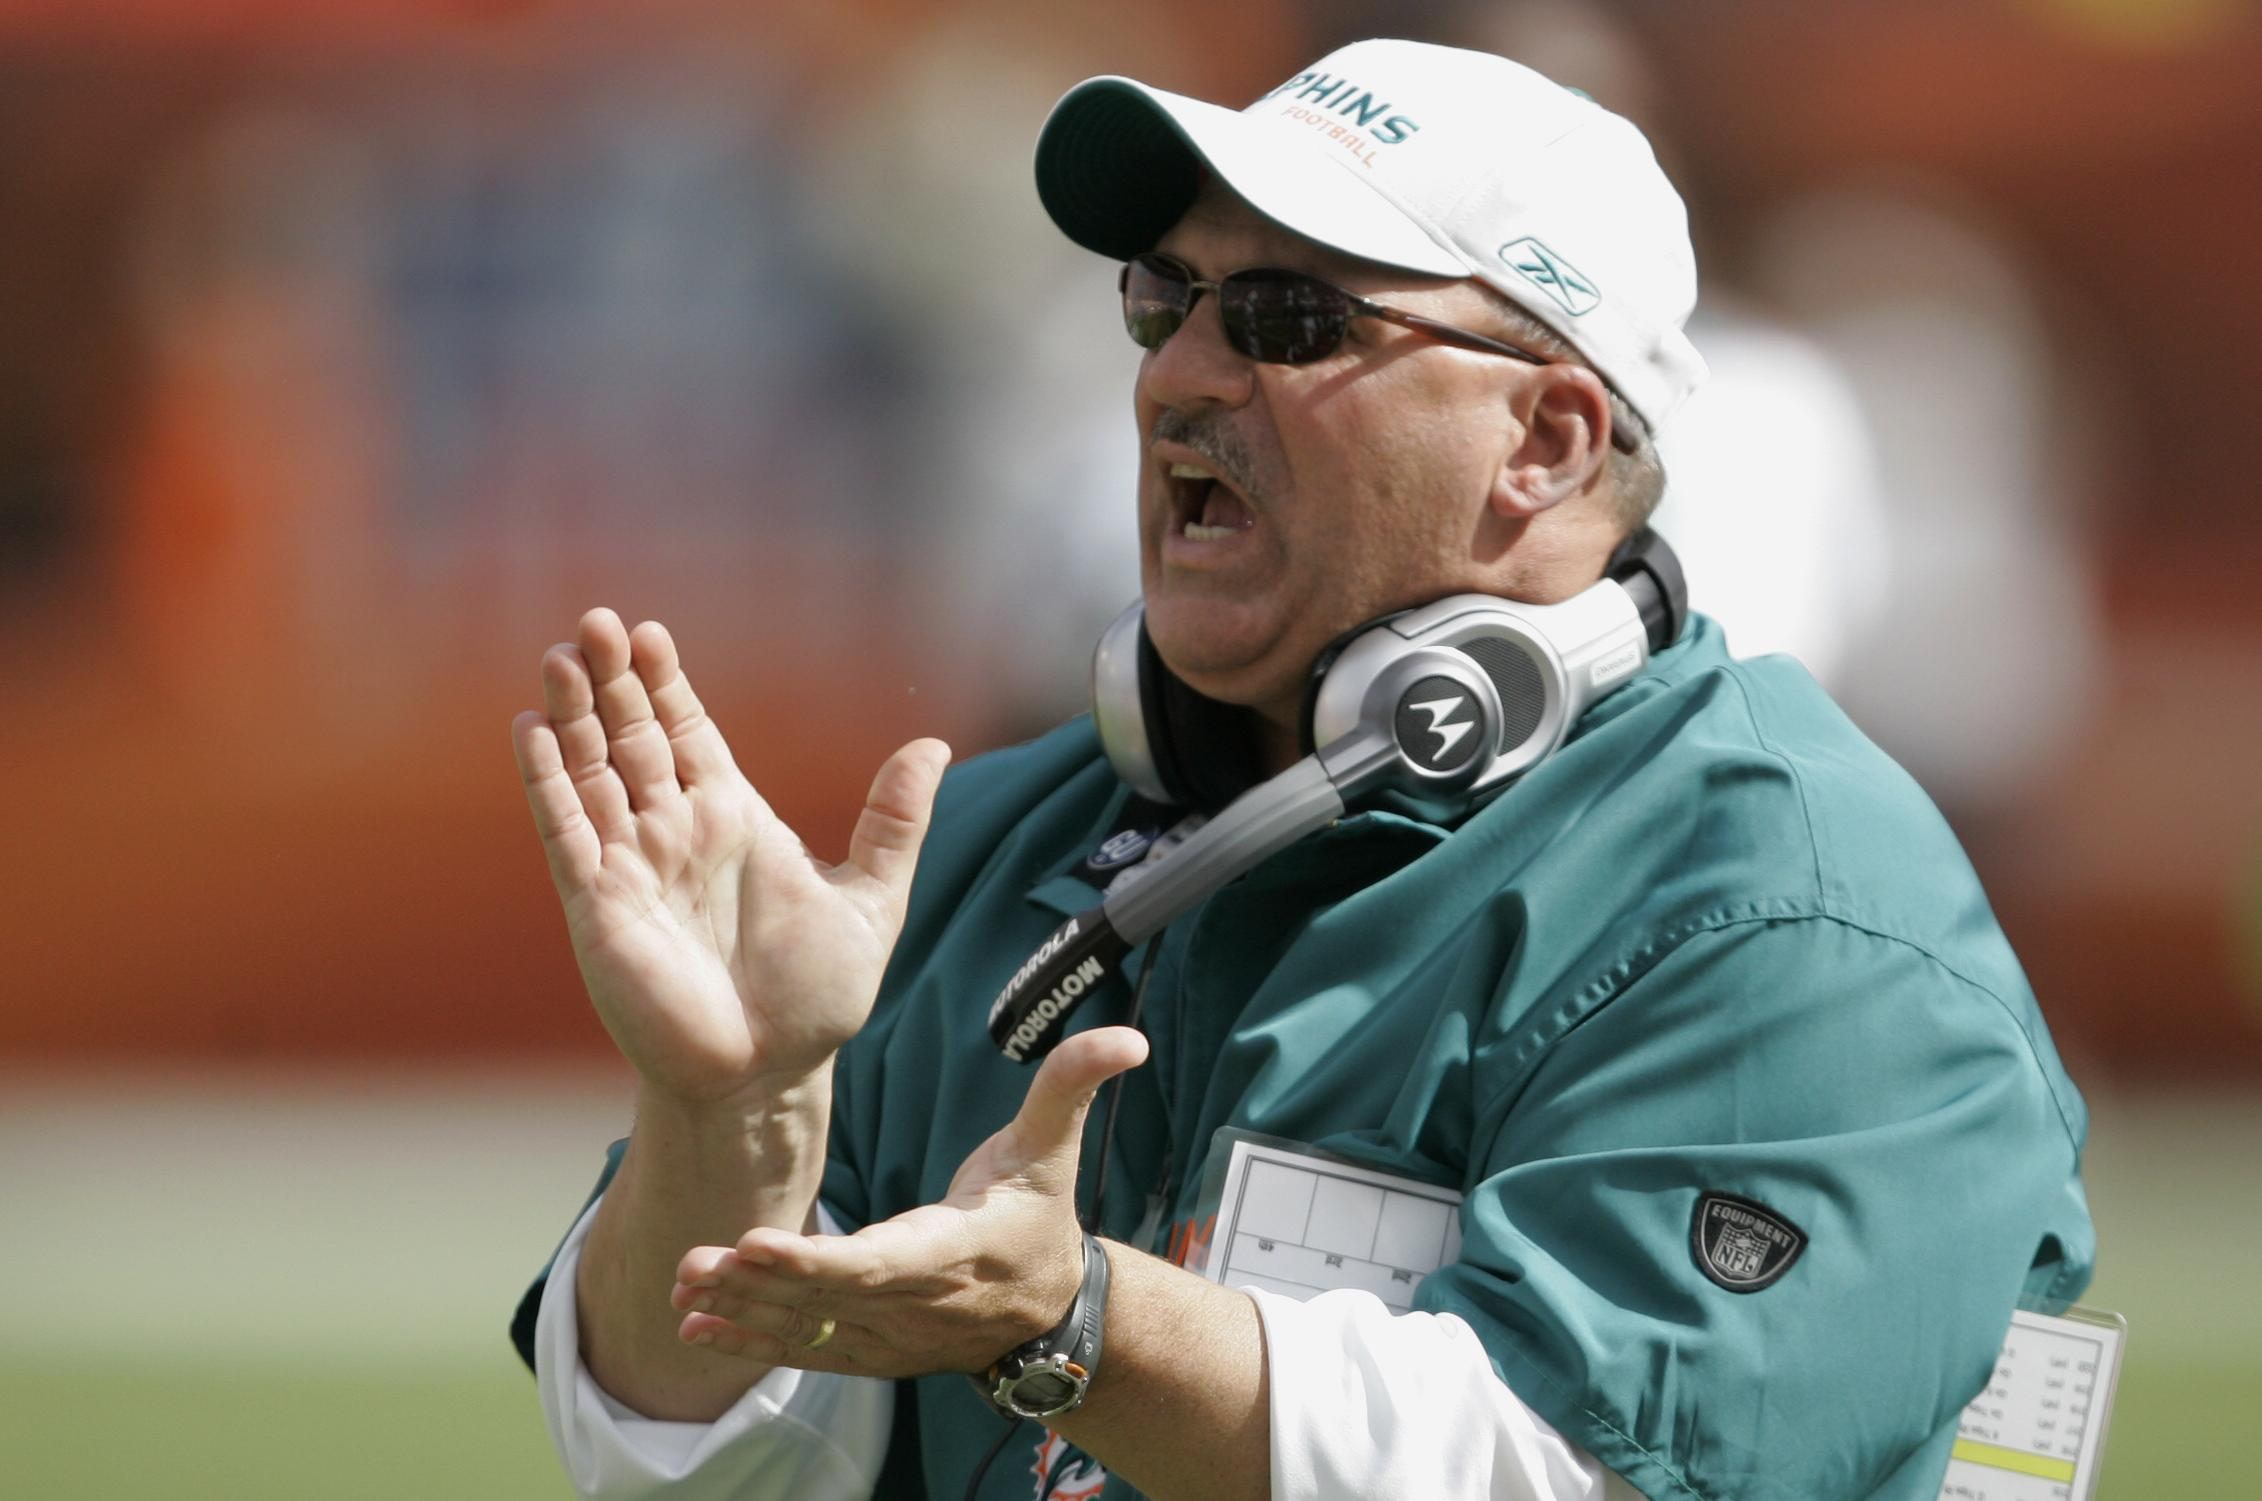 Former Miami Dolphins Head Coach Tony Sparano Died On Sunday He Had Been Working As